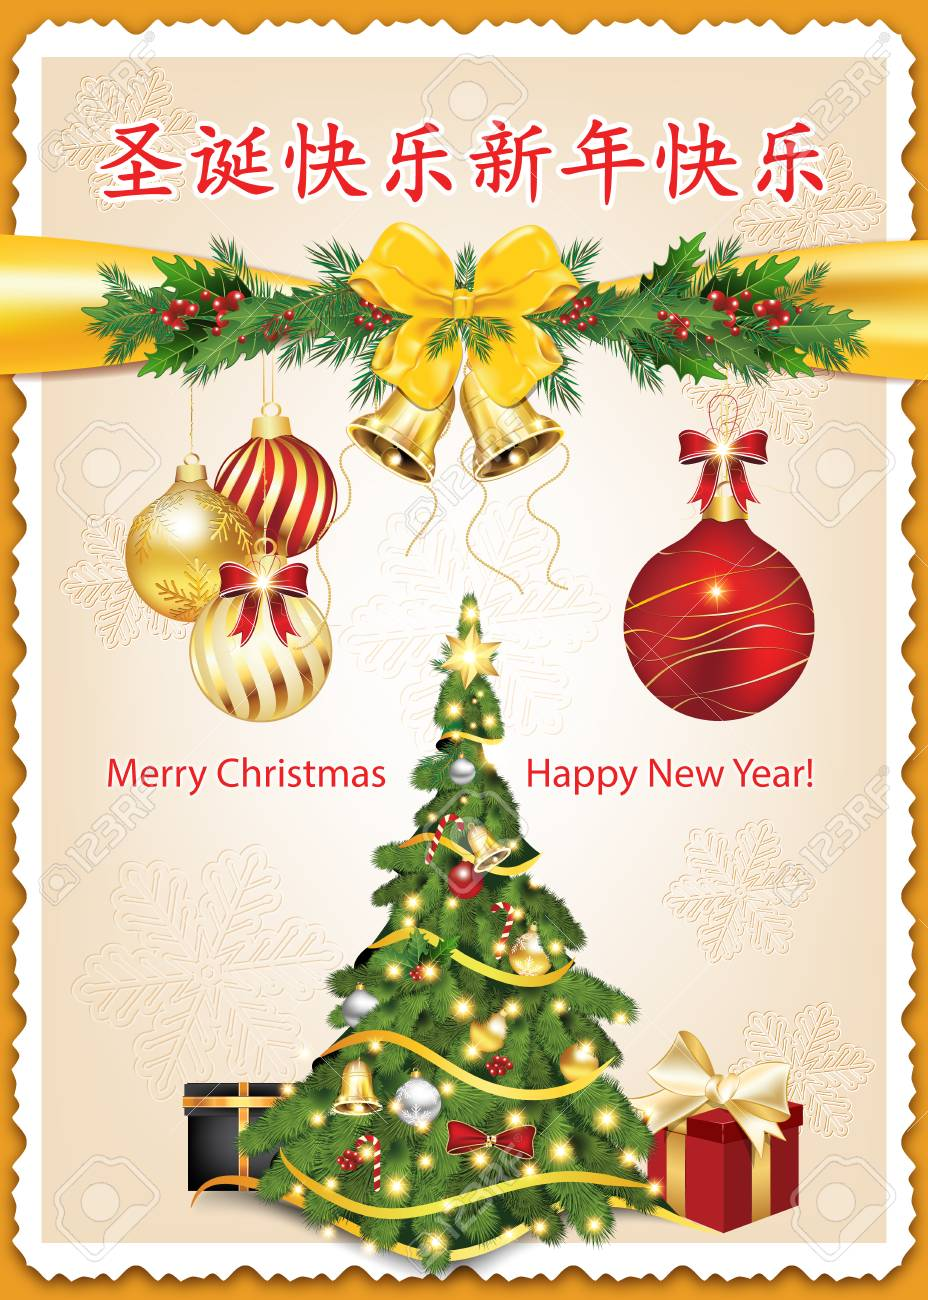 Business Greeting Card For Christmas And New Year In Chinese.. Stock ...